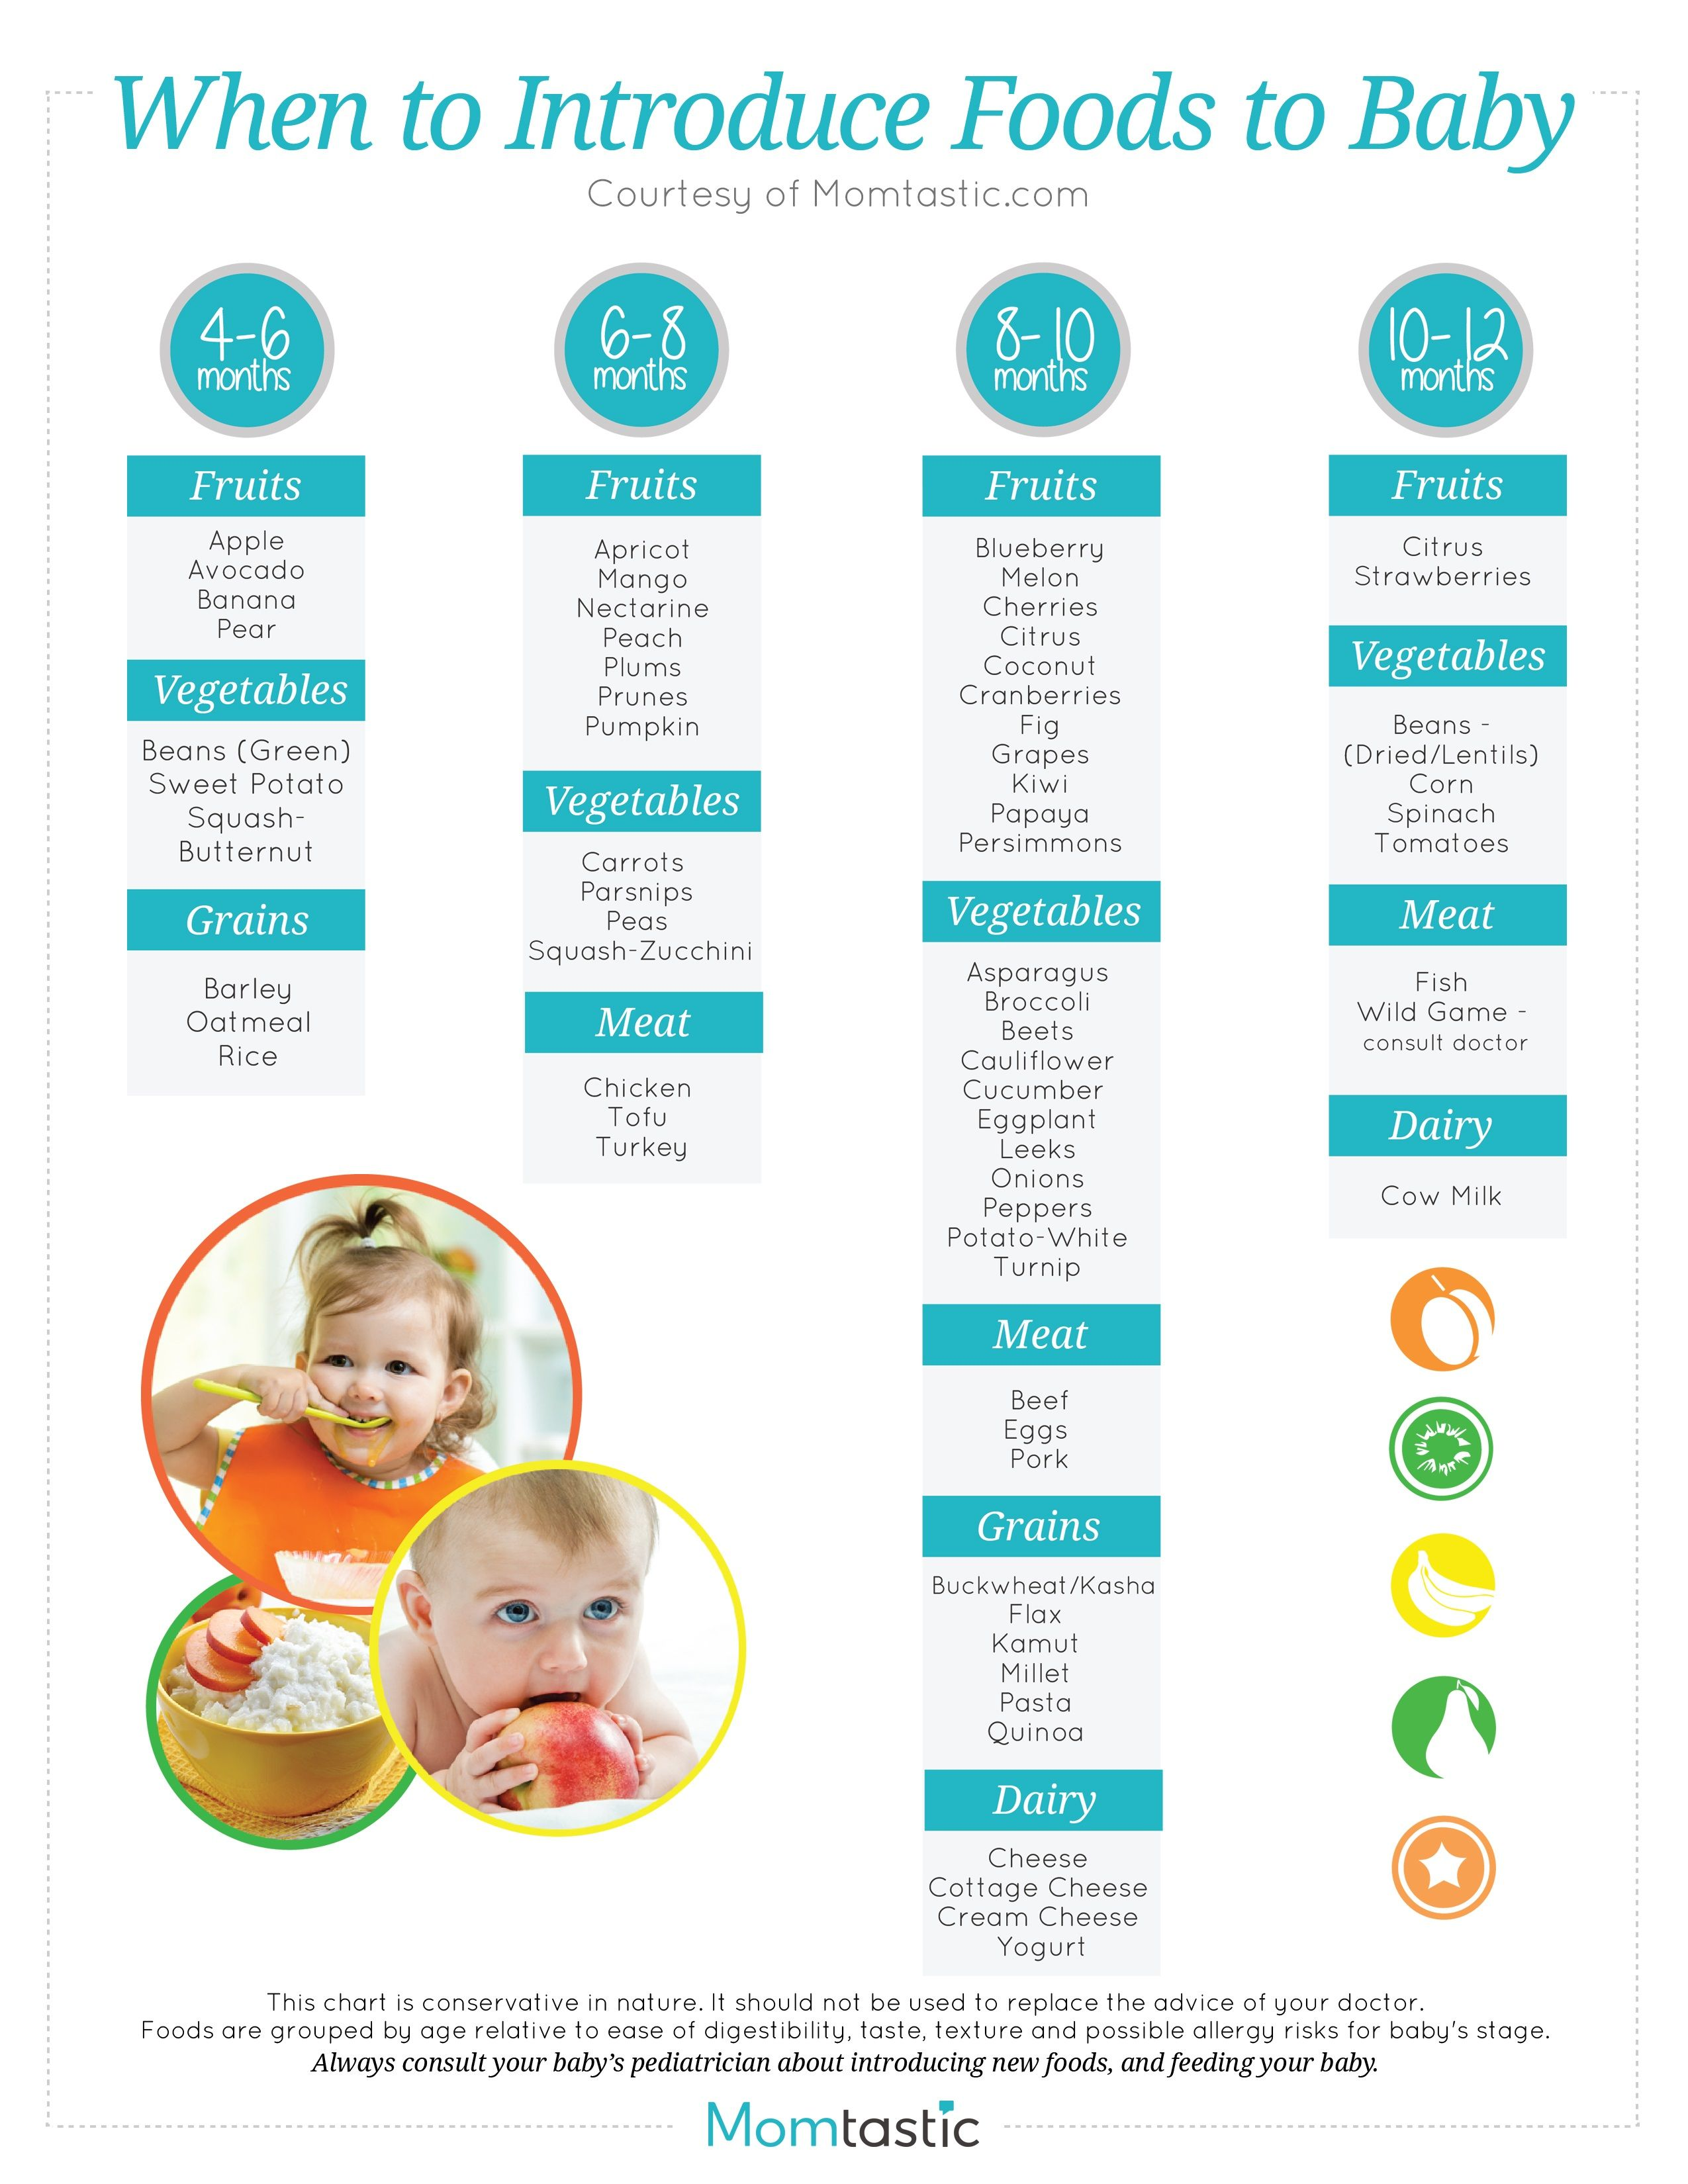 When can babies eat stage 3 foods